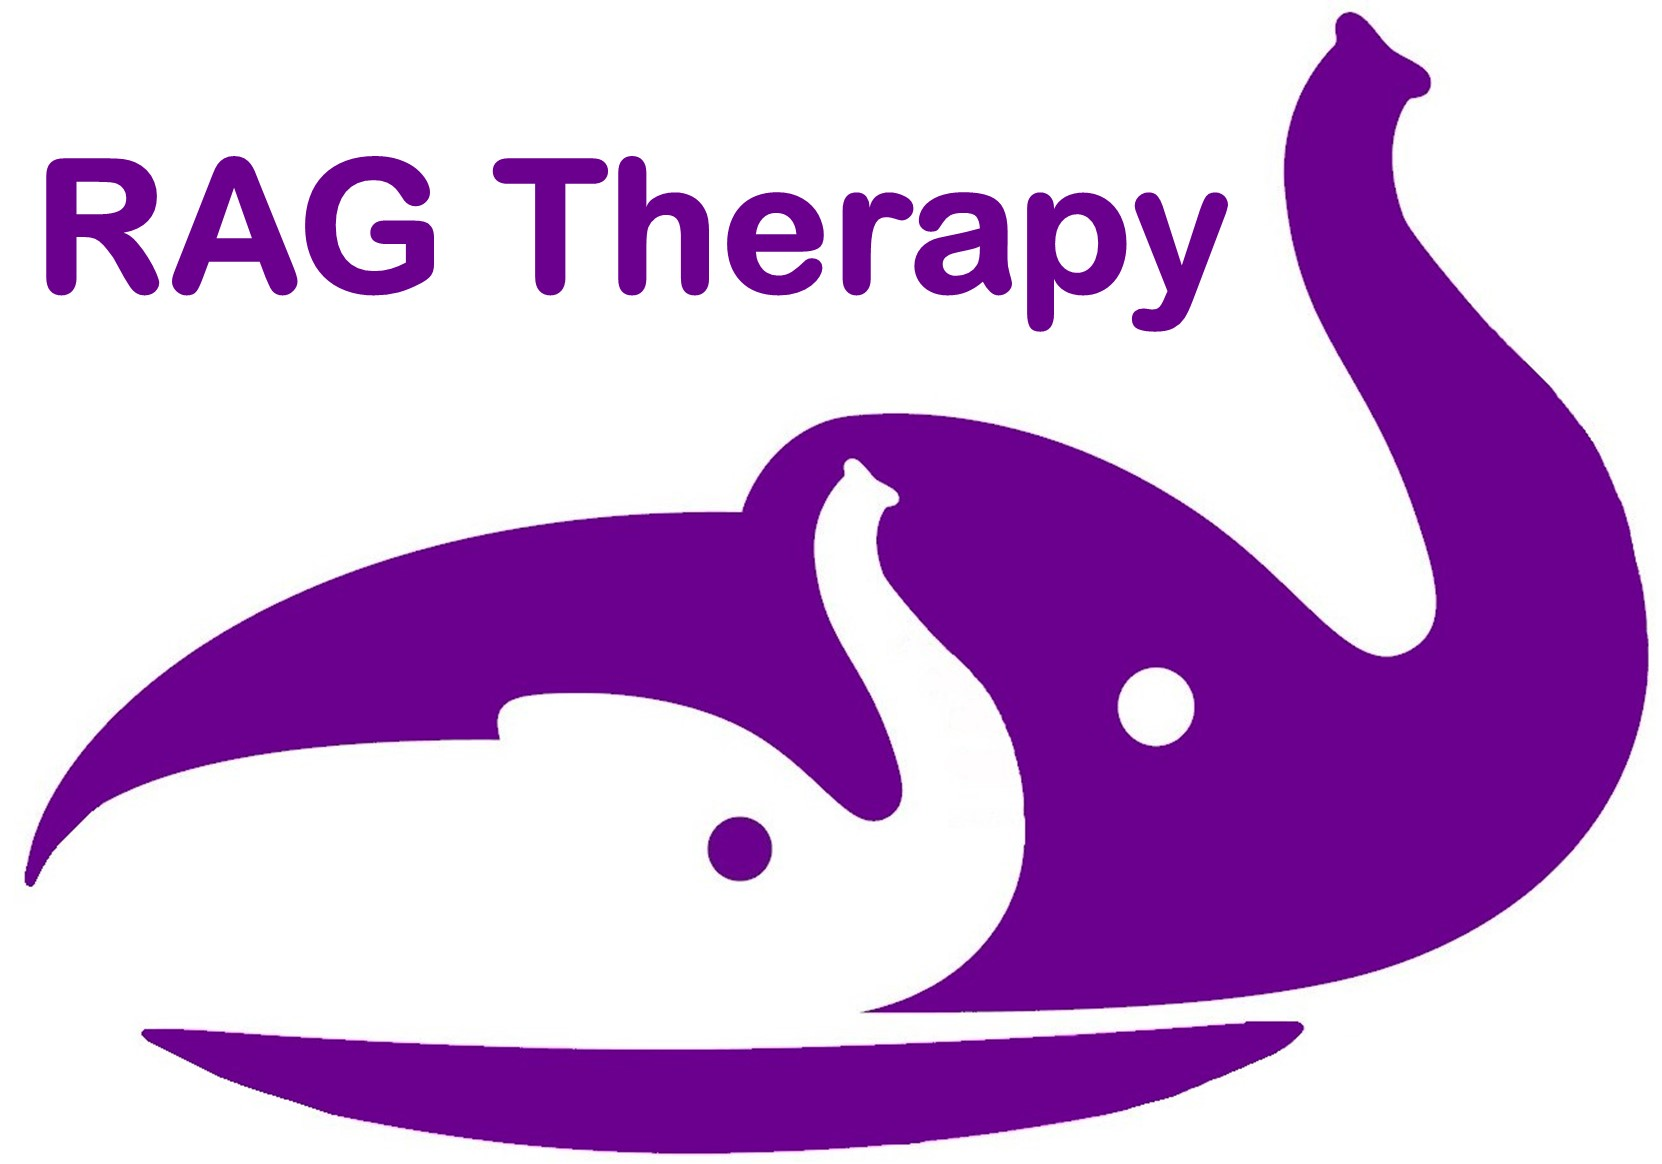 RAG Therapy